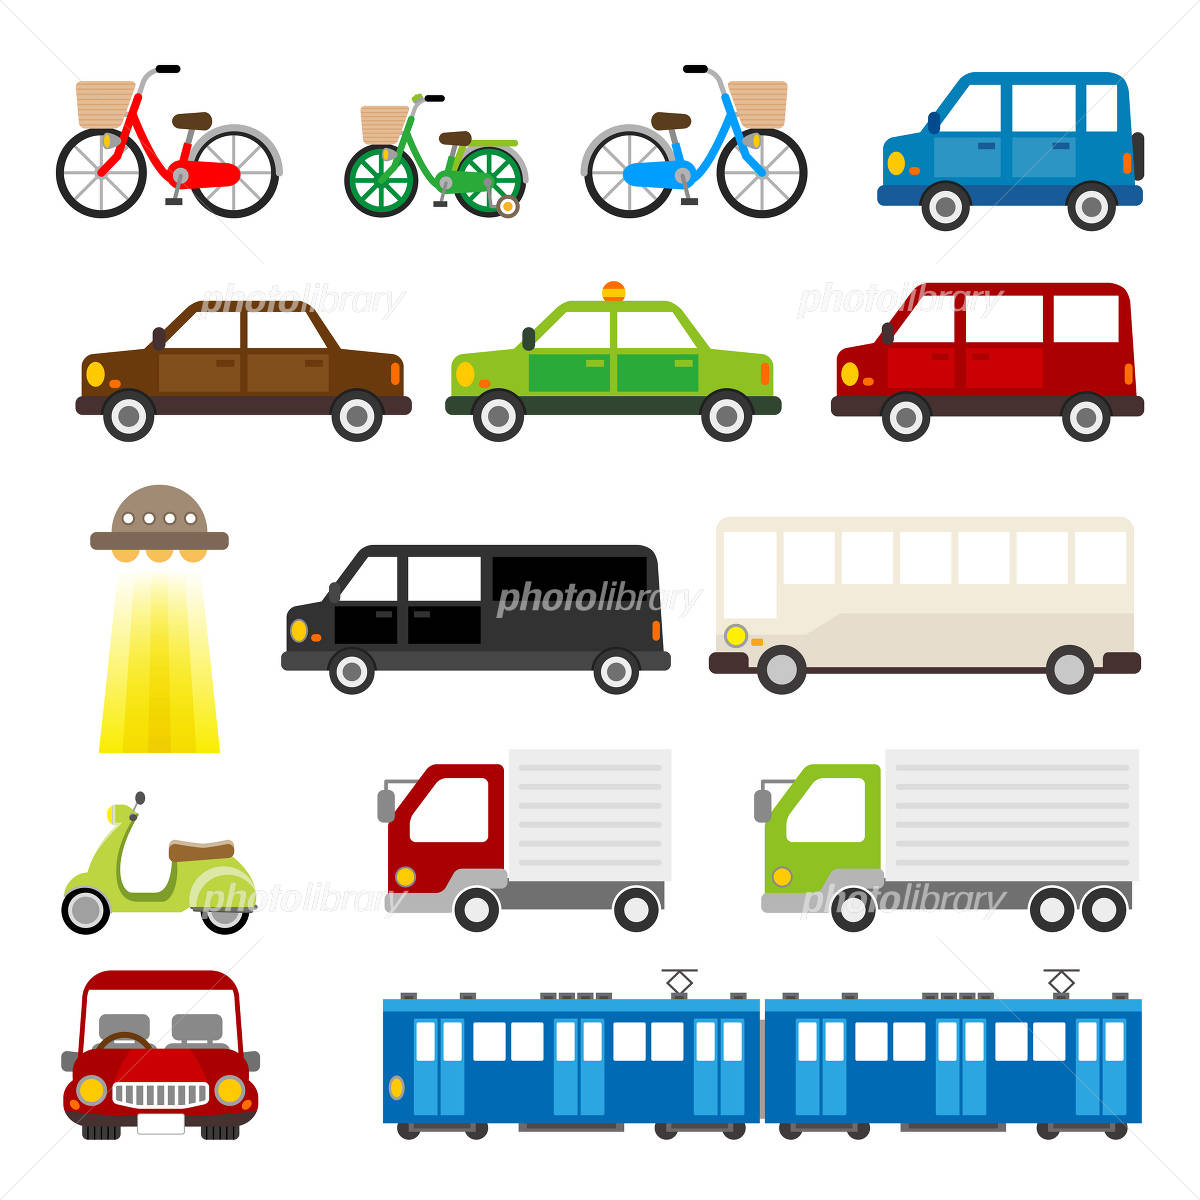 Car truck bicycle train taxi ride イラスト素材